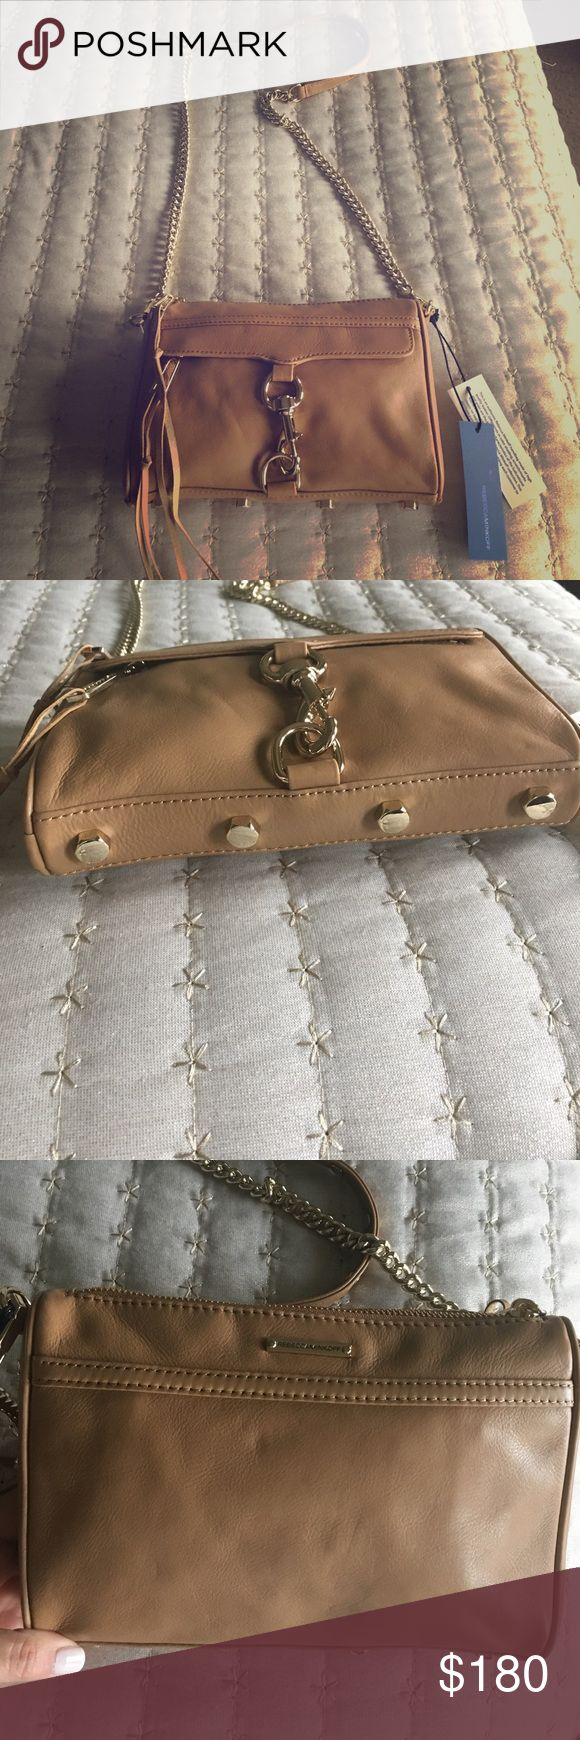 Rebecca Minkoff Mini Mac Cross-body Bag This chic and trendy style is a must-have! Includes dustbag & extra leather pulls for the zippers. Purchased from Nordstrom. Rebecca Minkoff Bags Crossbody Bags